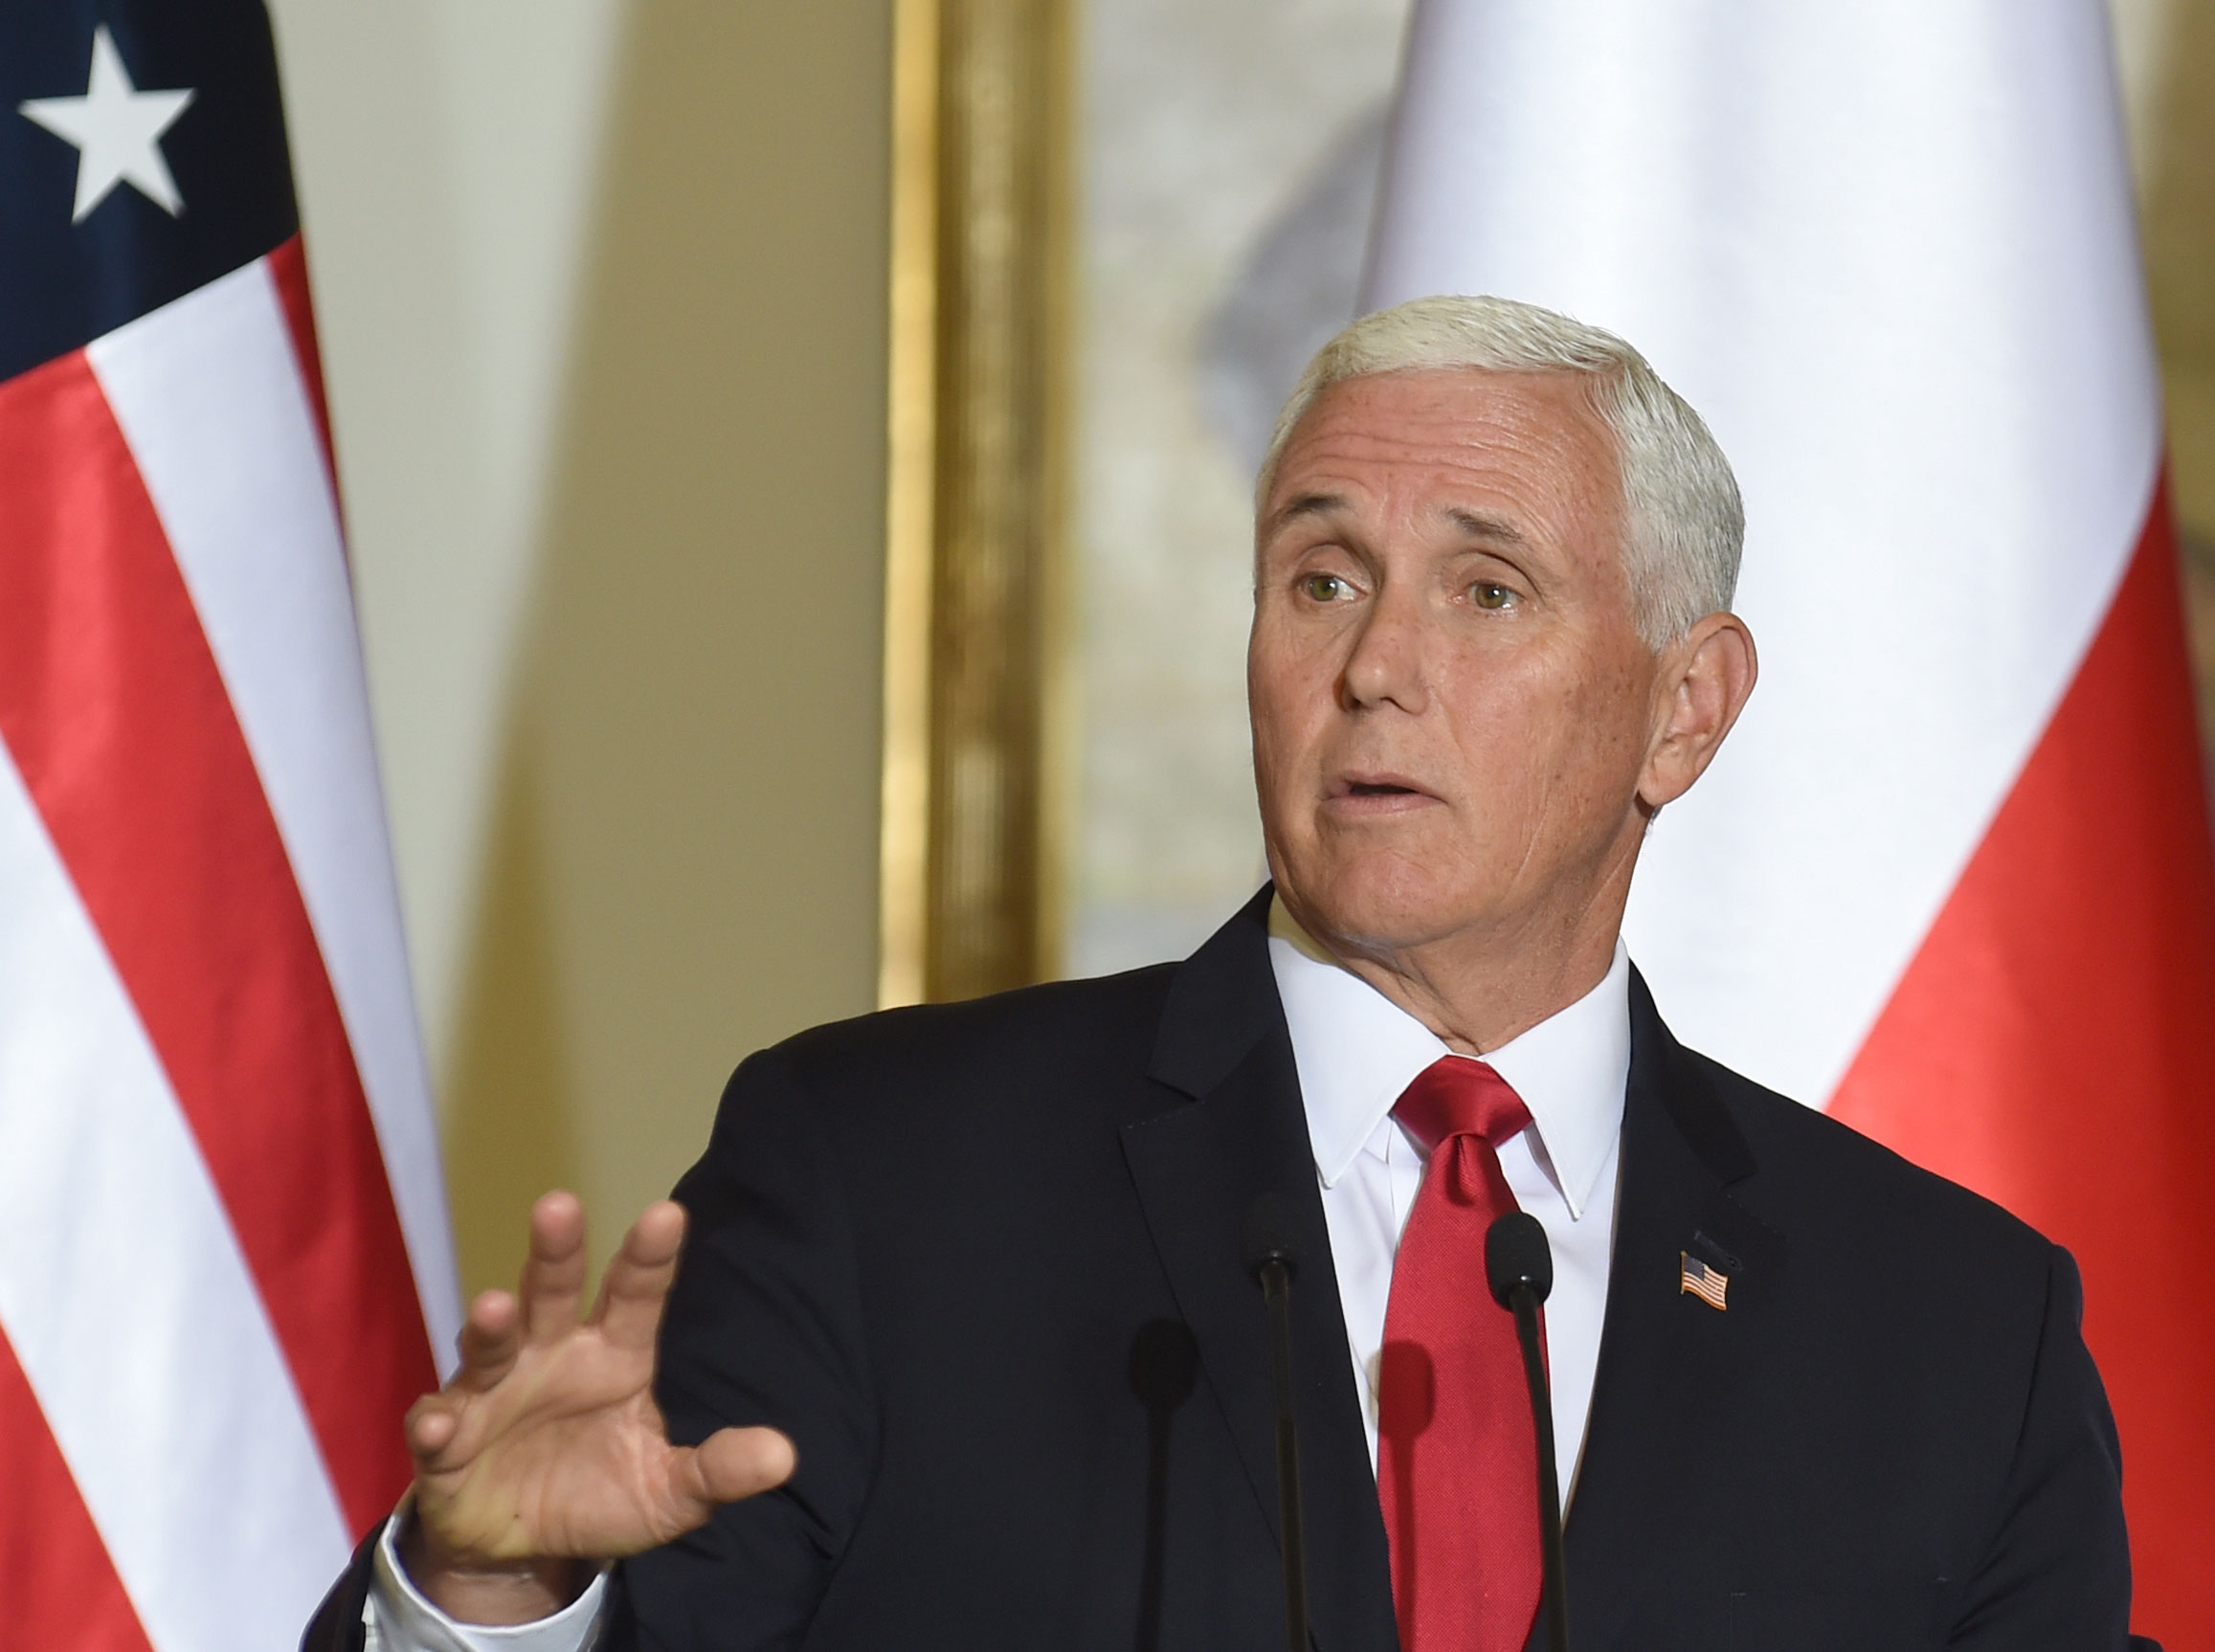 US Vice President Mike Pence speaks in Warsaw on September 2, 2019.